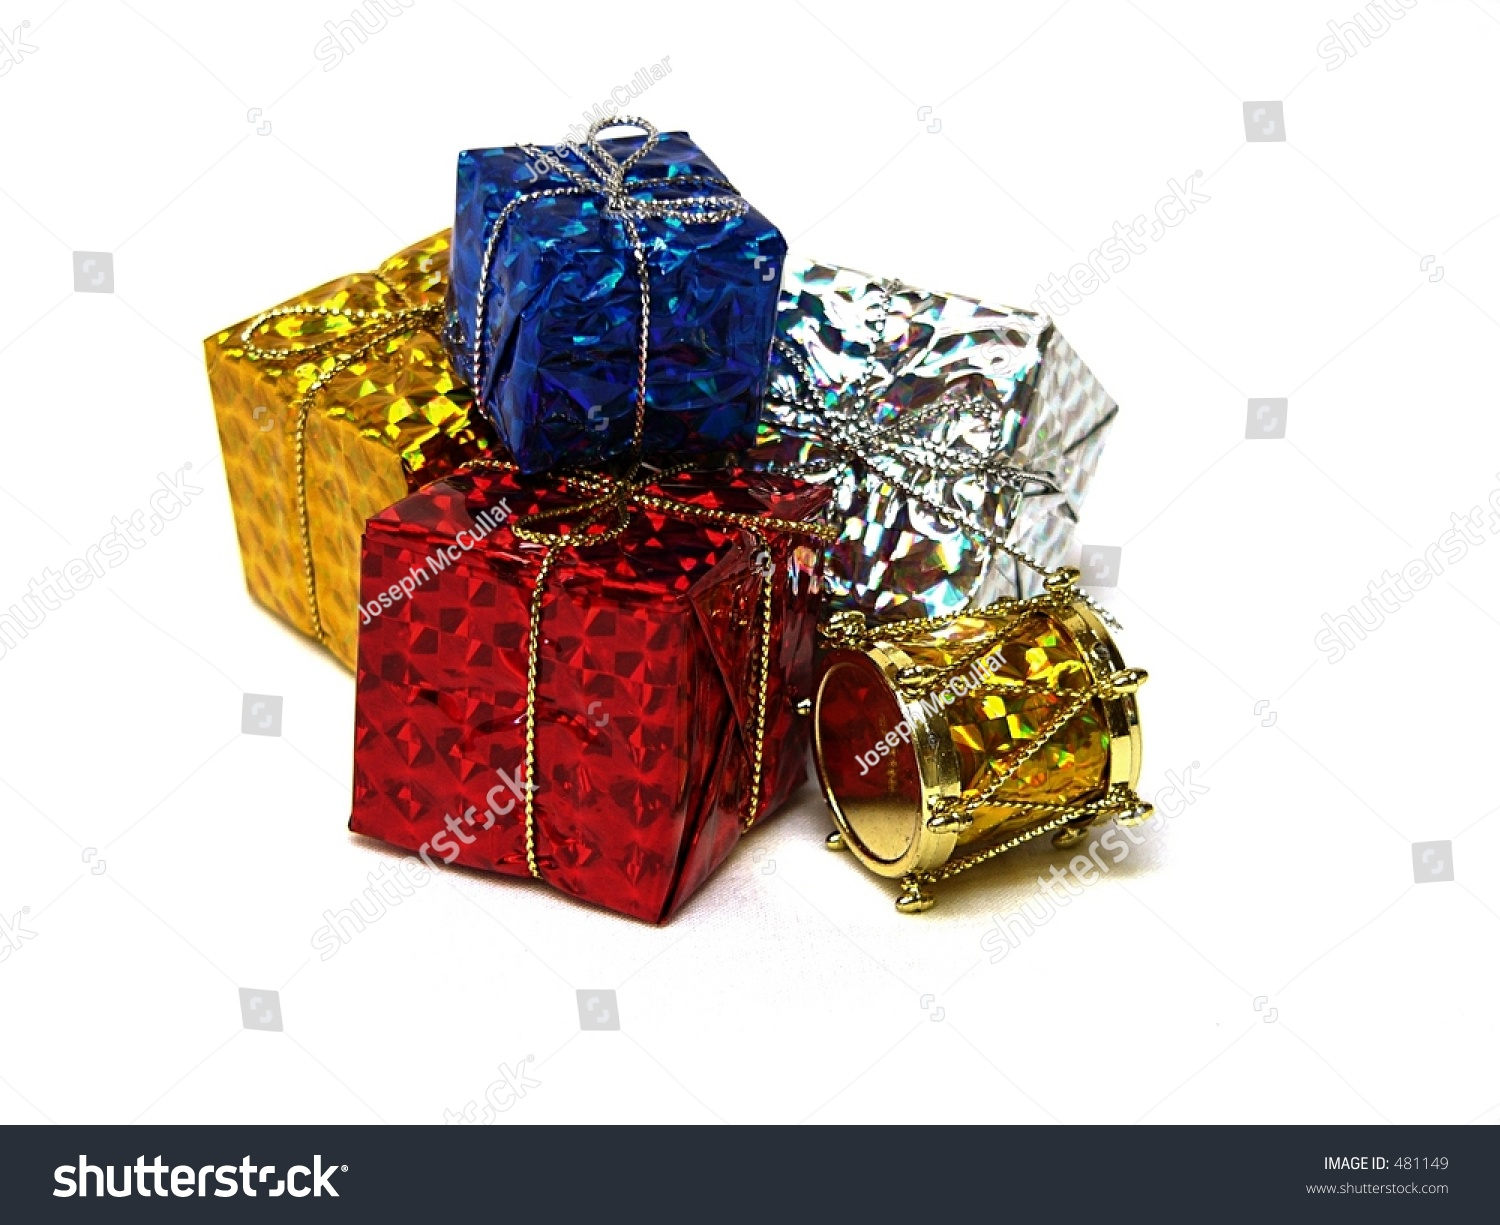 Gift wrapped presents stock photo safe to use 481149 shutterstock gift wrapped presents negle Images